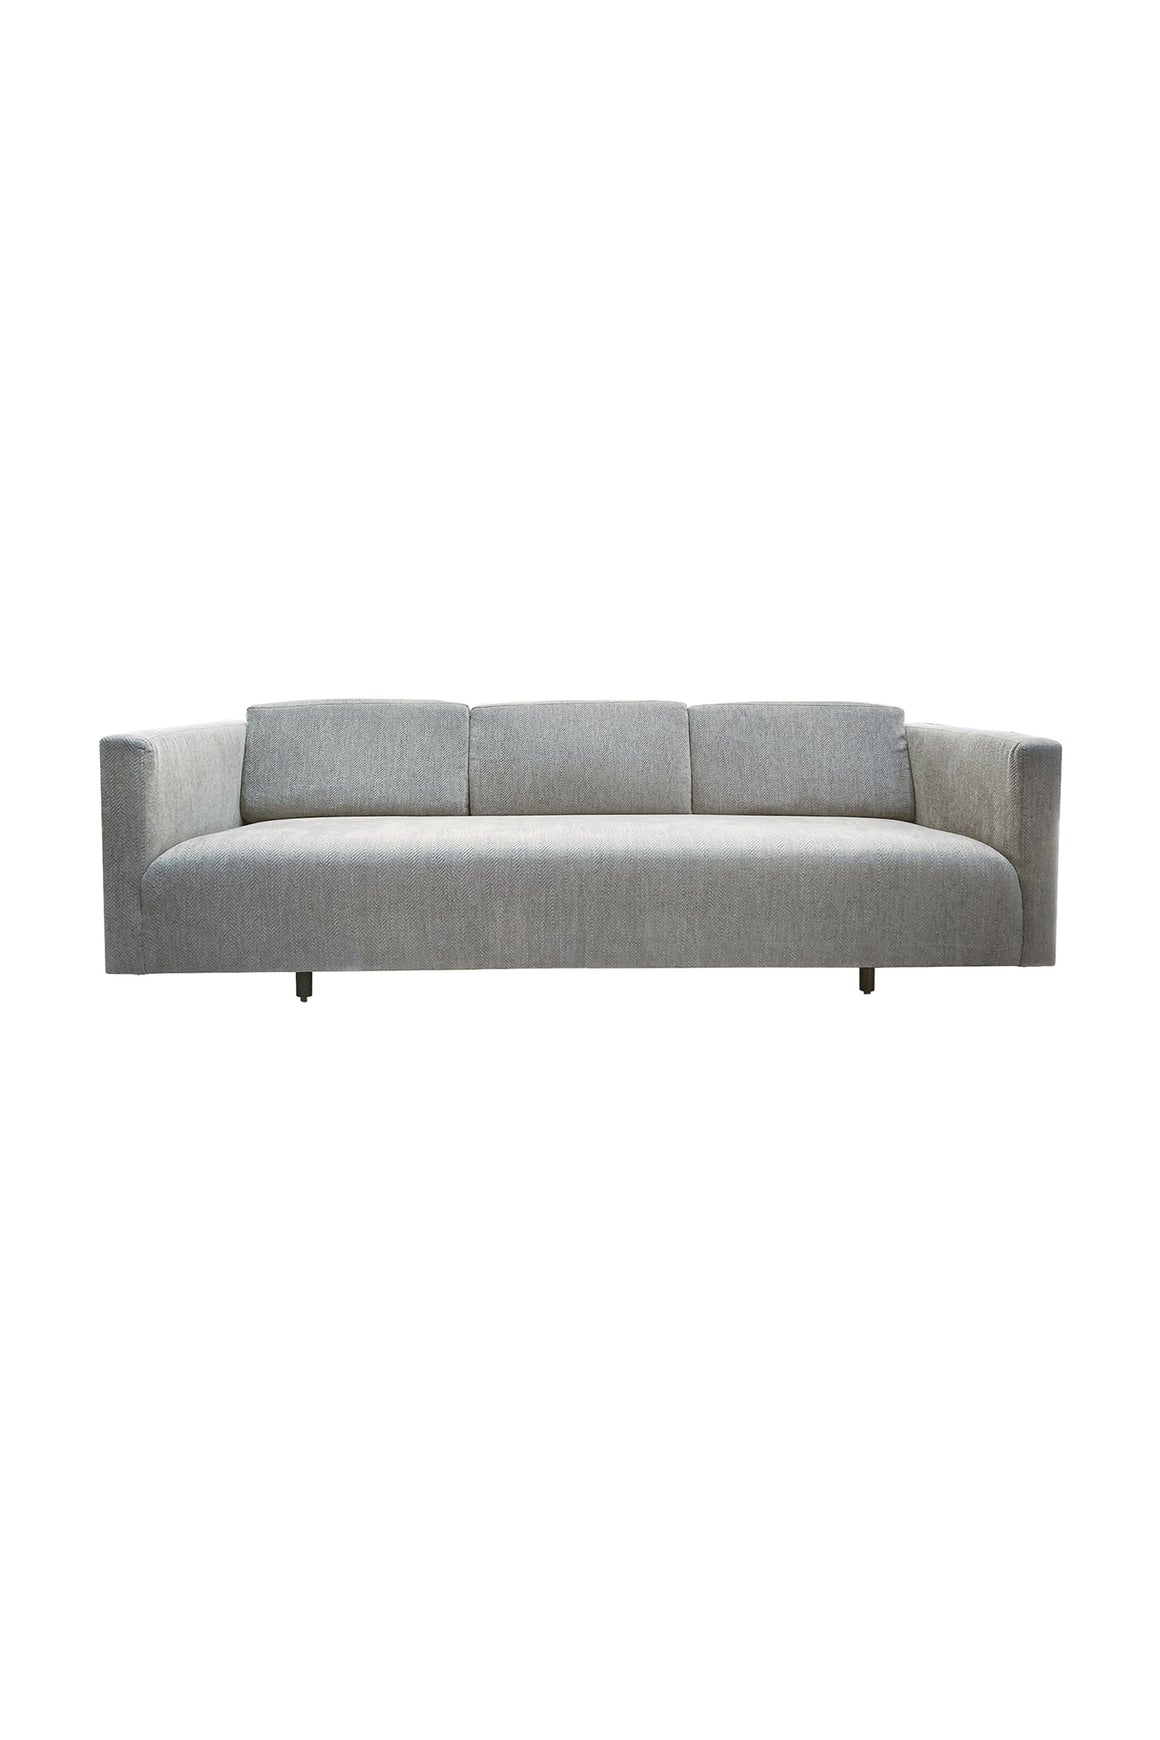 Mid-20th Century Tuxedo Sofa by Harvey Probber